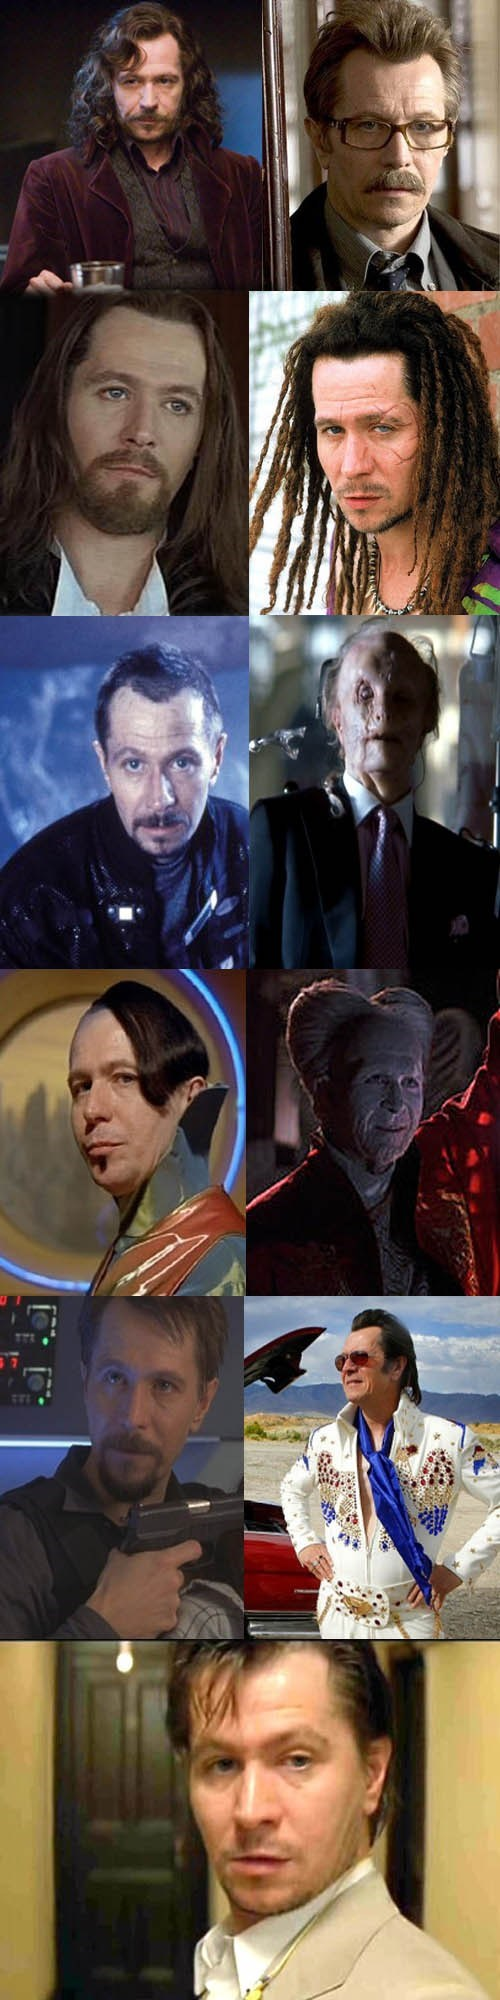 Gary Oldman actor celeb - 6767528448